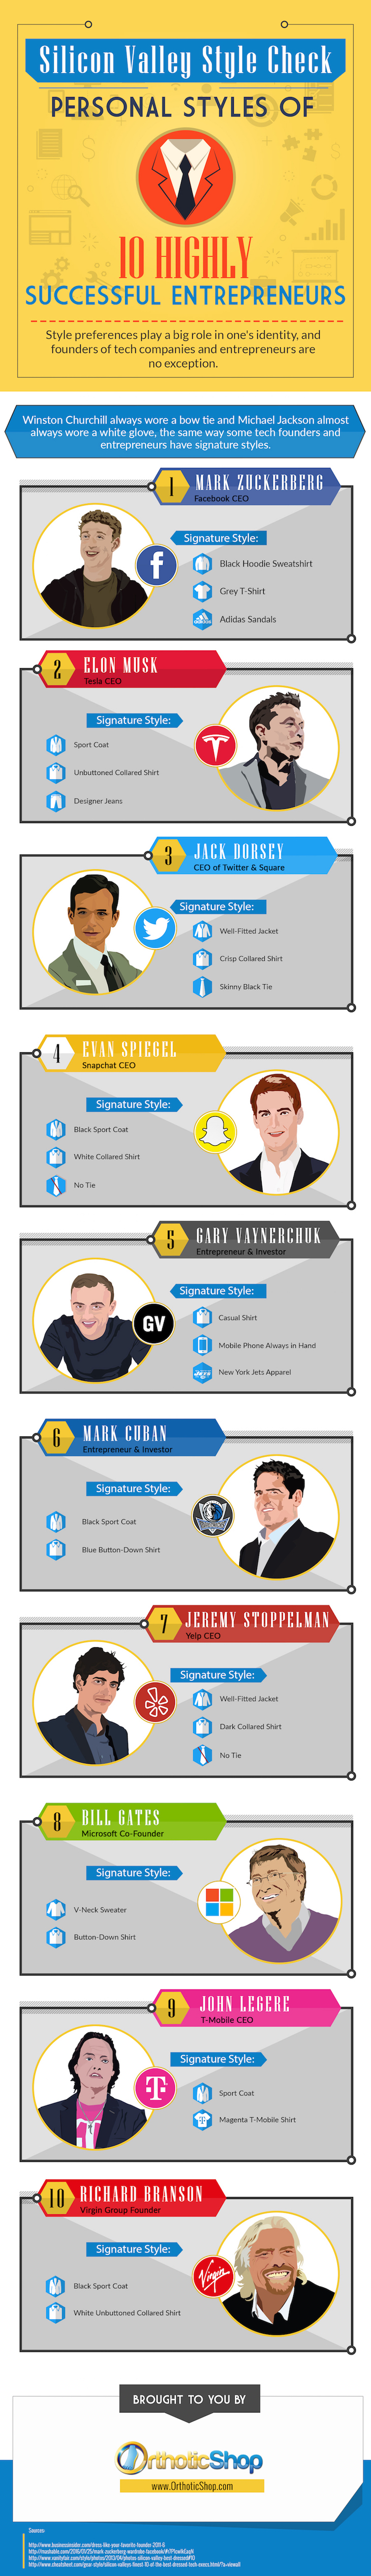 10 Personal Styles Belonging to Successful Entrepreneurs [Infographic]